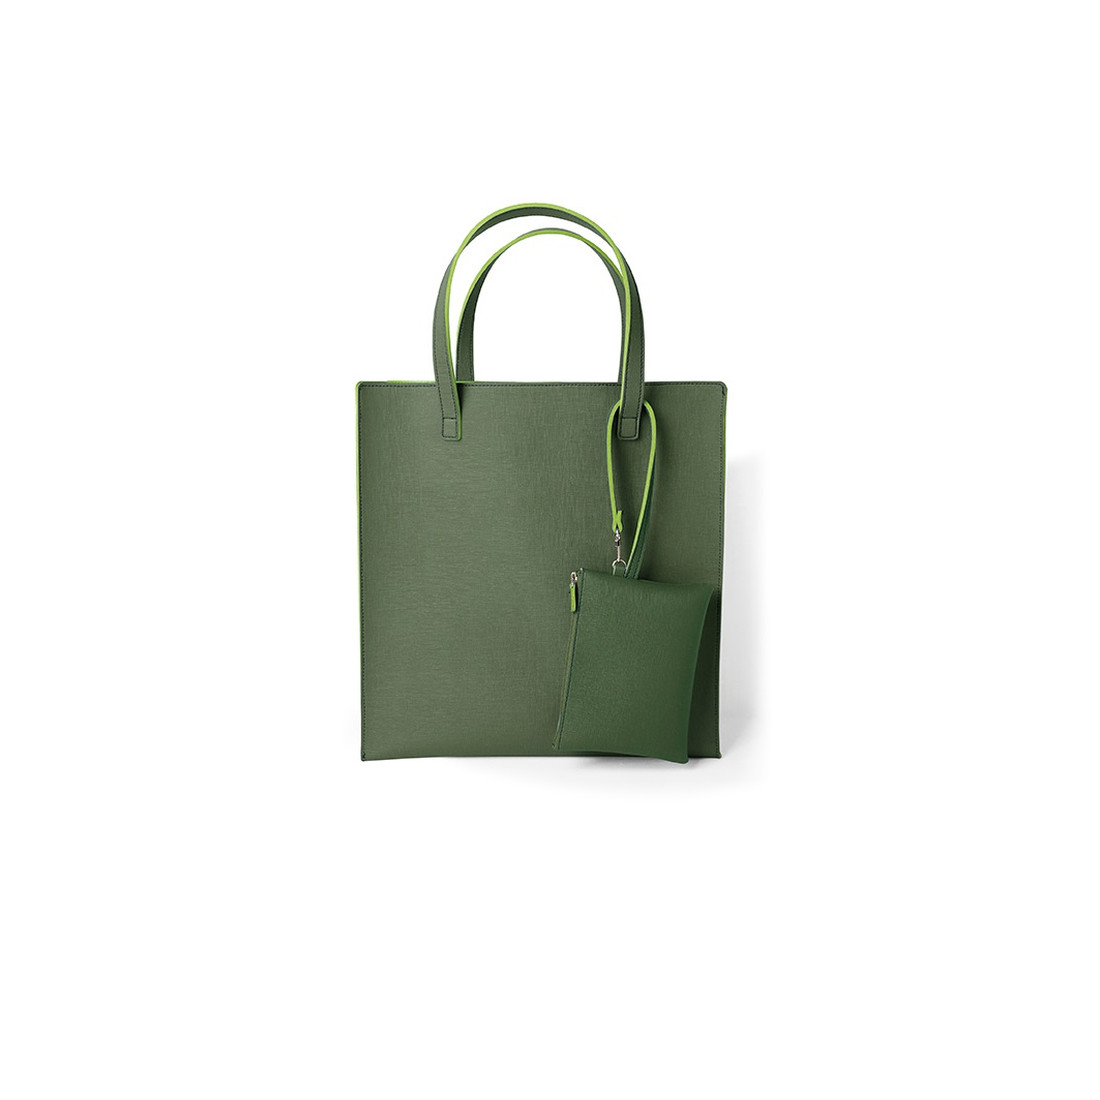 Shopper mit Pouch - Forrest / Moos by REMEMBER